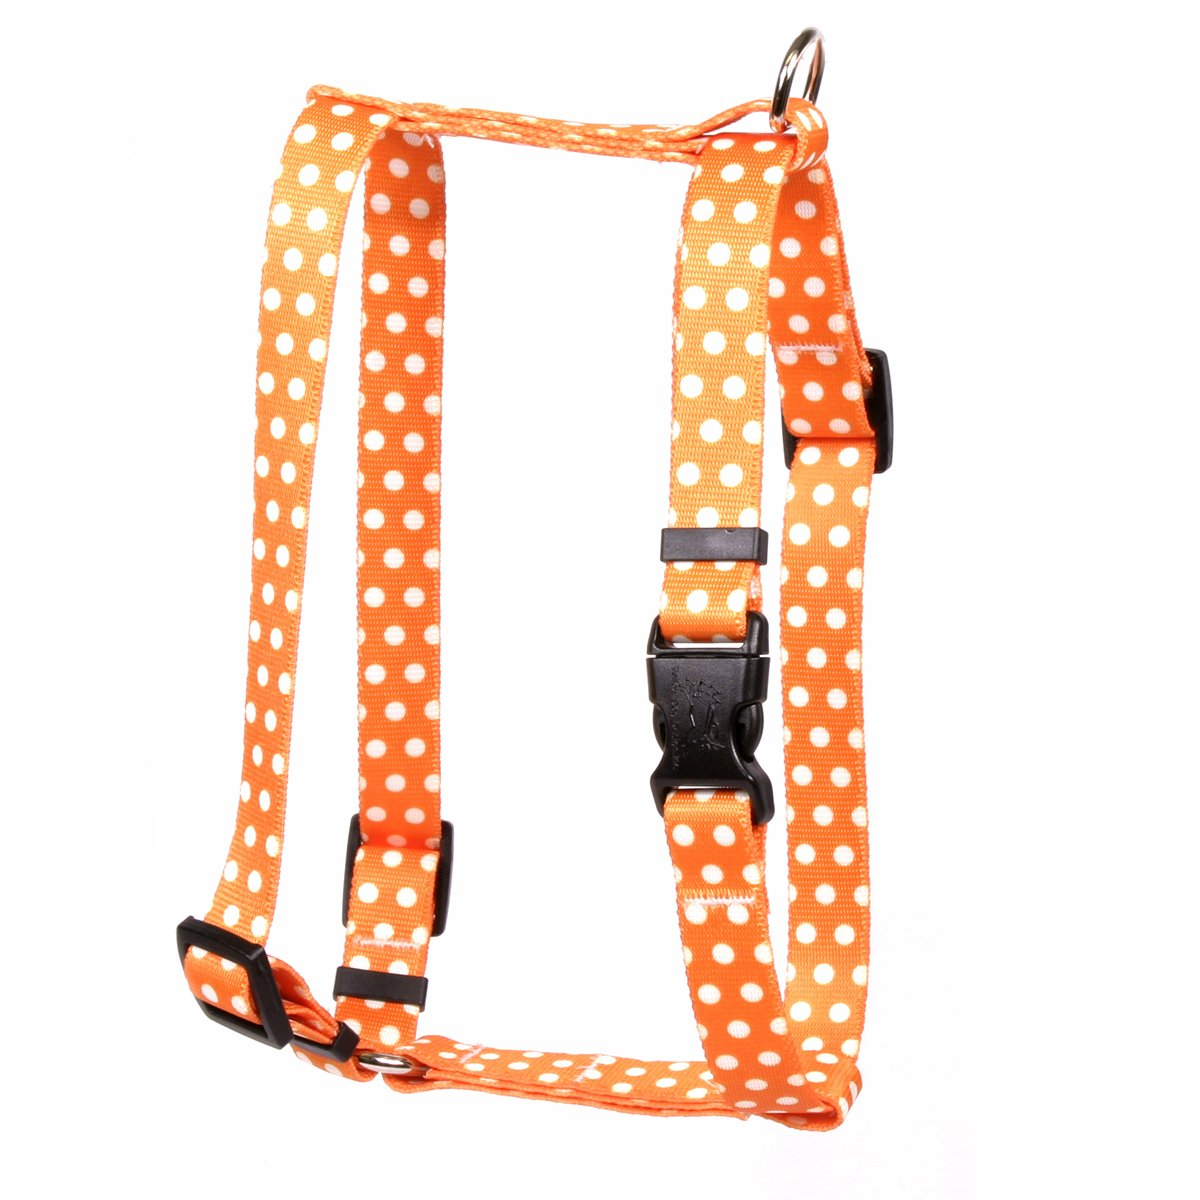 Yellow Dog Design Orange Polka Dot Roman H Dog Harness, Small/Medium-3/4 Wide fits Chest of 14 to 20'' by Yellow Dog Design